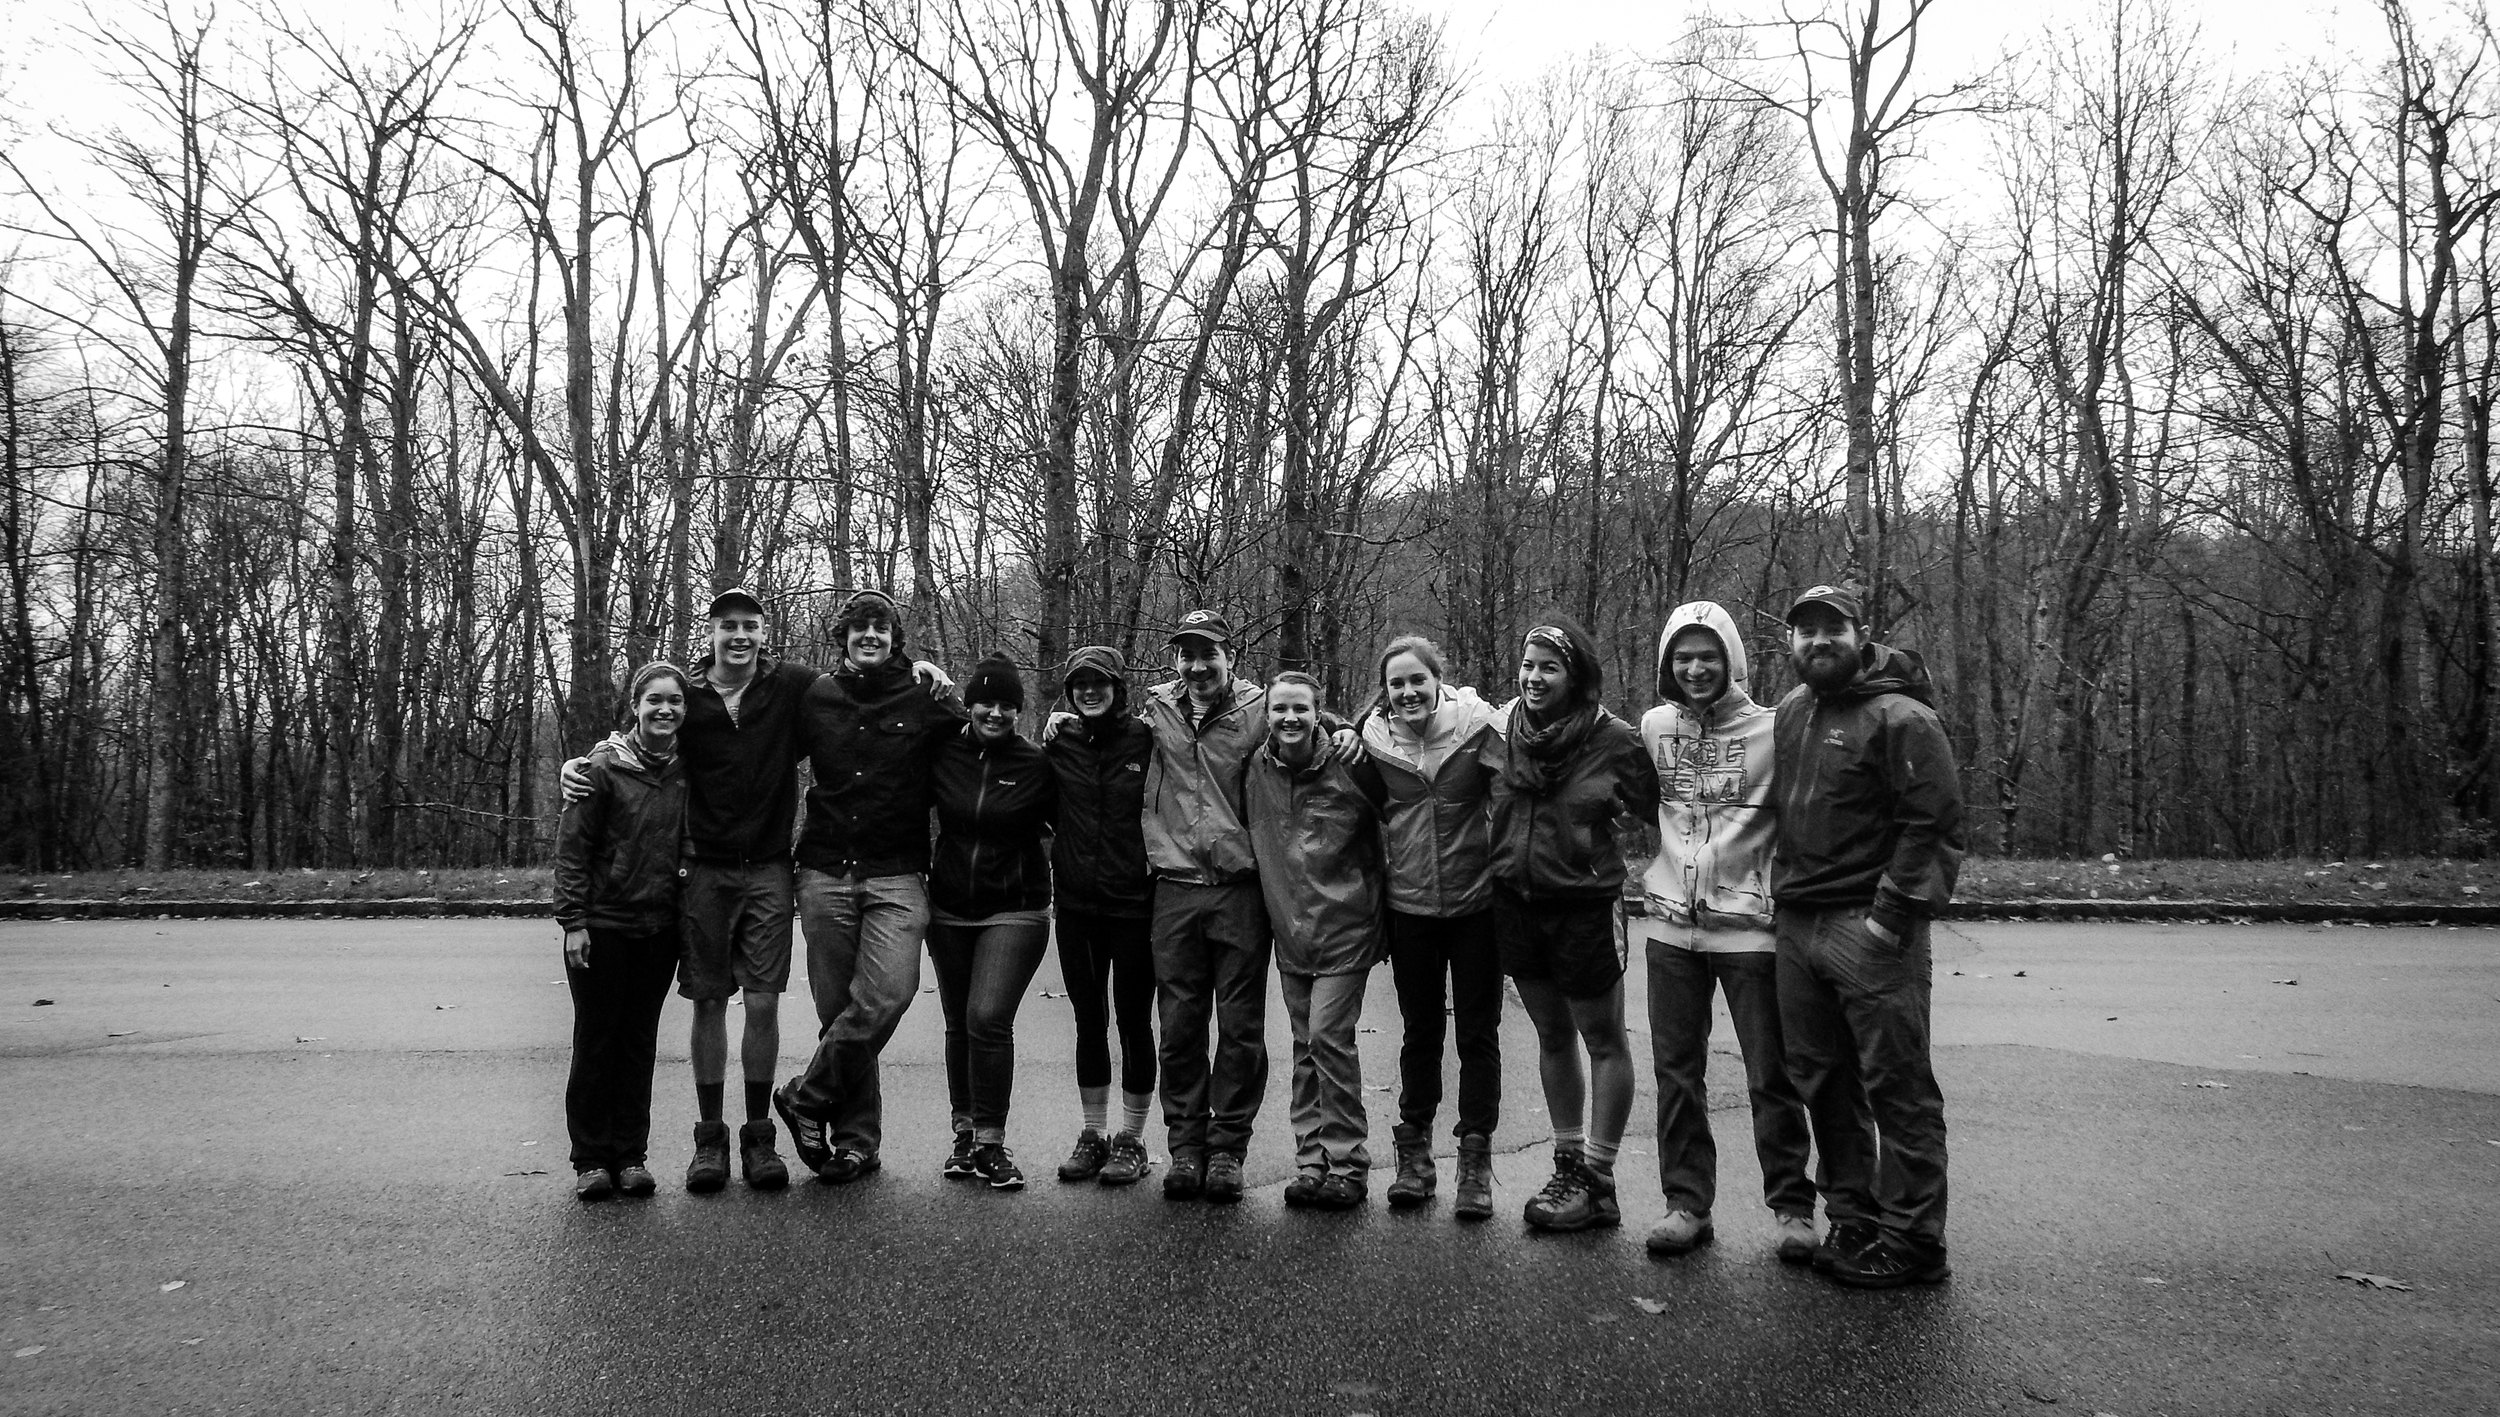 This is the crew that started the celebration with us, braving the chill and the rain to help clear some trail of unsightly trash; We commend this group for bringing joyful hearts to do some dirty work. (left to right: Maria, Jason, Jacob, Jill, Emma, Leif, Annabeth, Maddy, Hannah, Parker, and Tom)